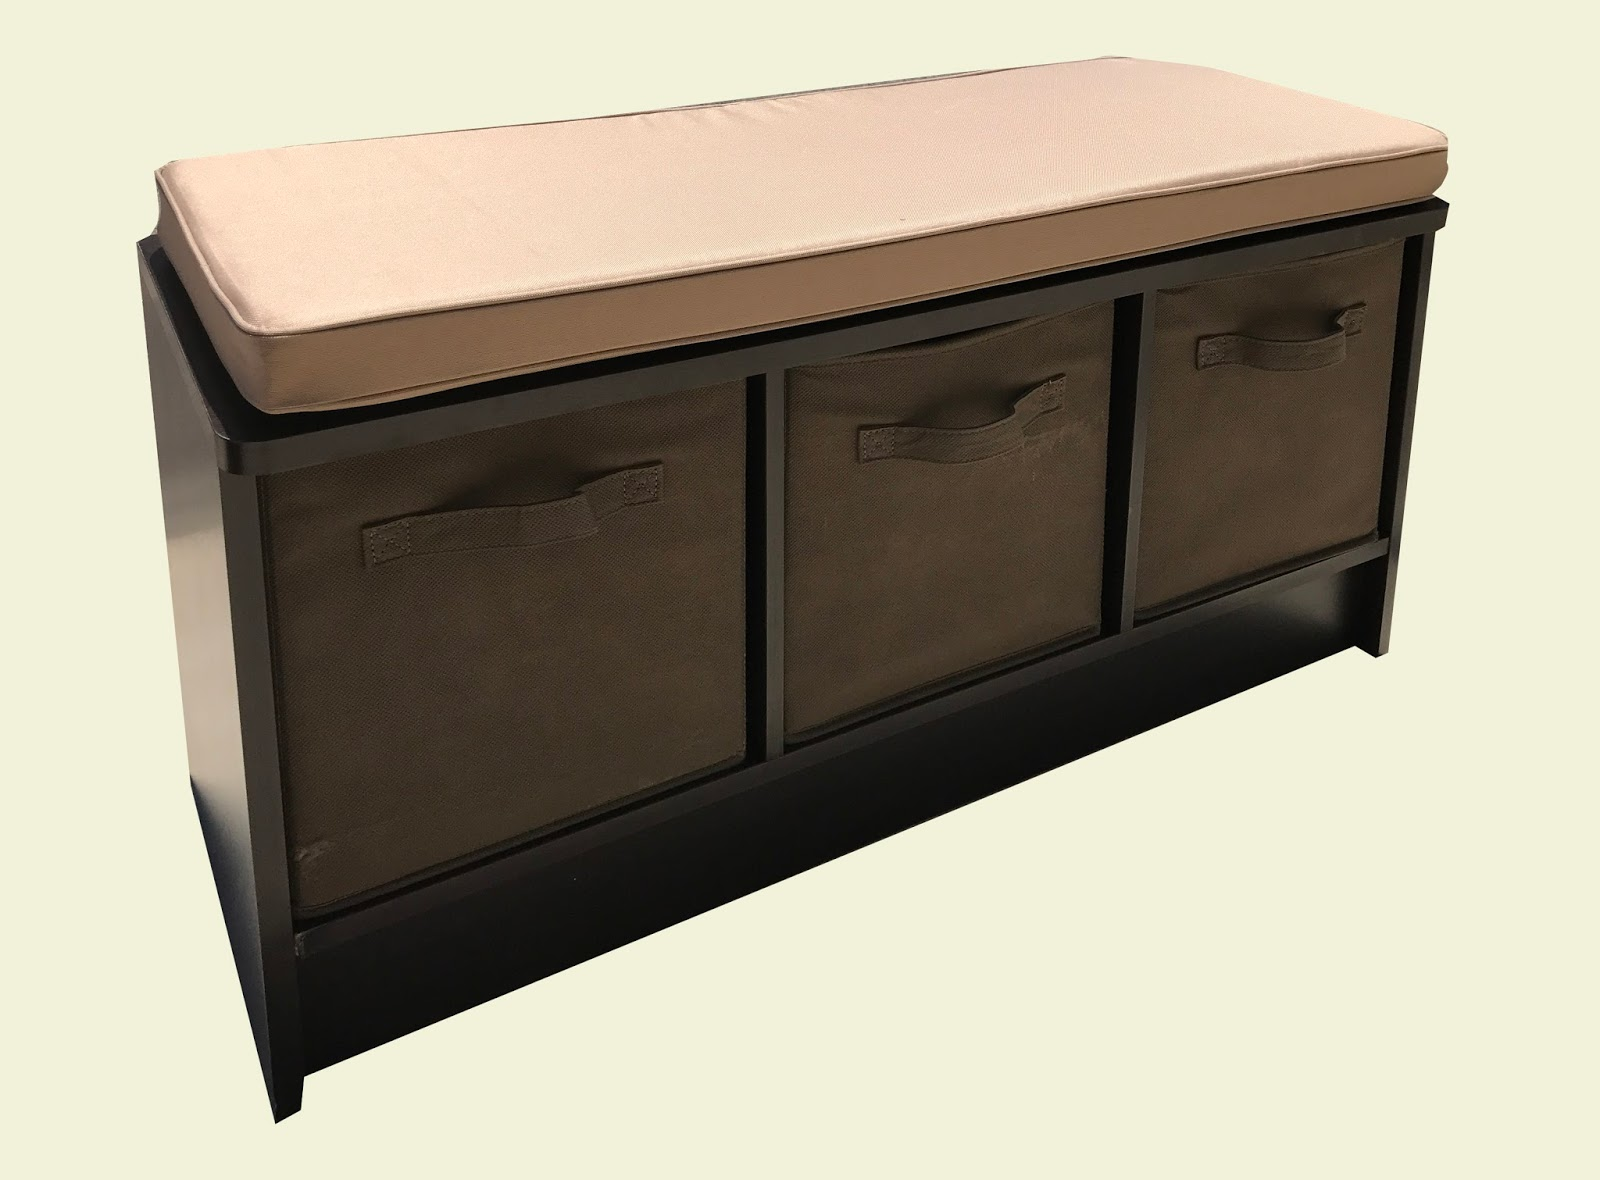 Uhuru Furniture Collectibles Small Bench 35 Sold